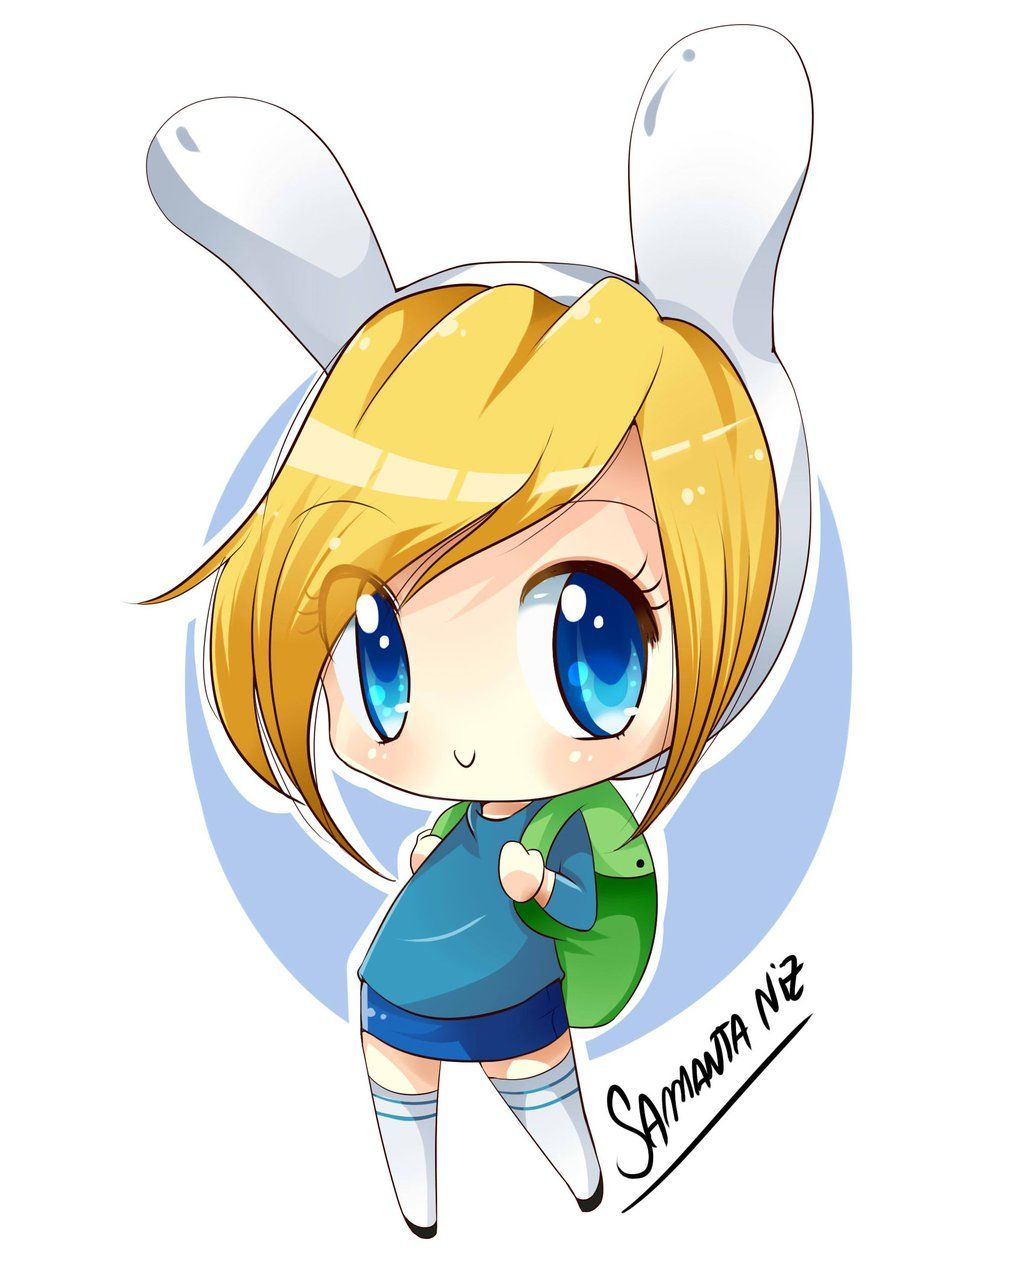 Fionna chibi (With images) Adventure time anime